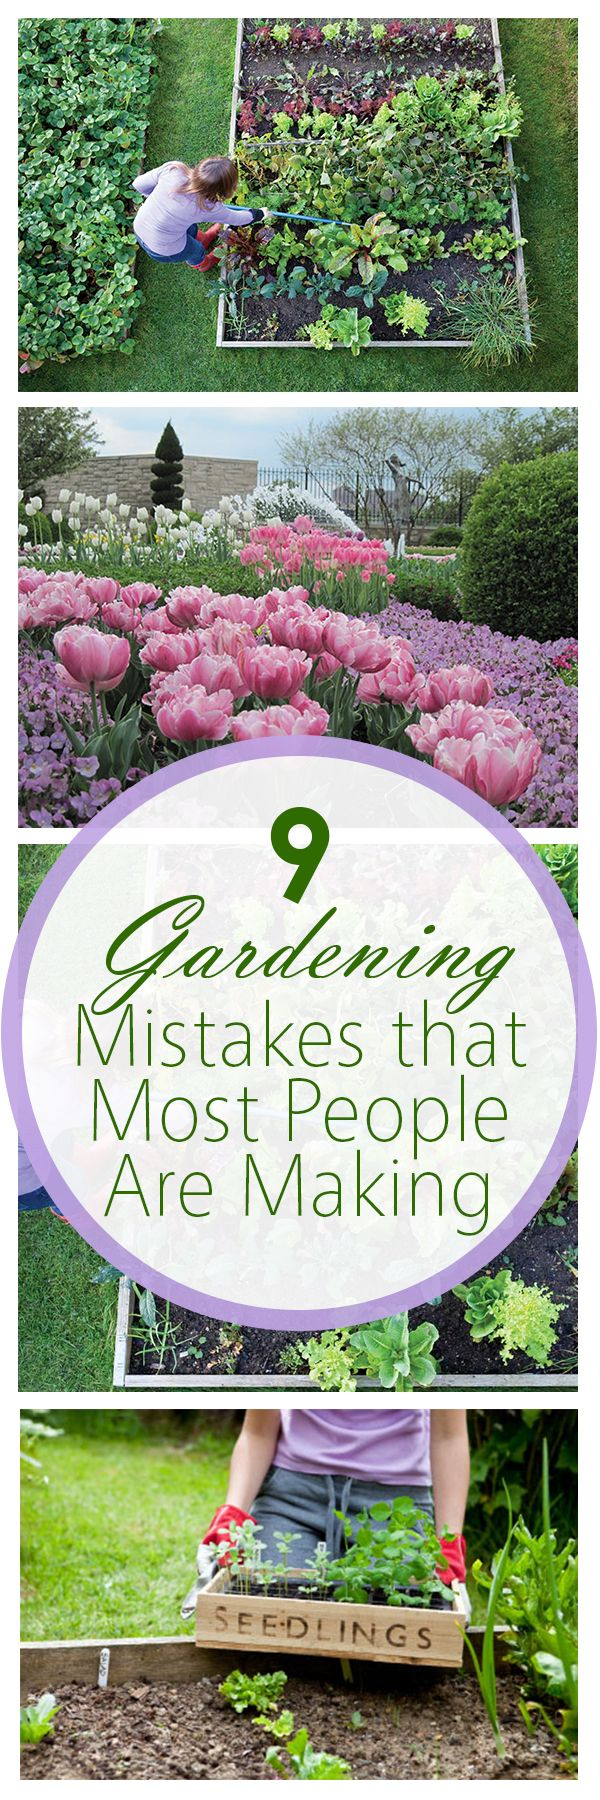 9 Gardening Mistakes that Most People Are Making- really quite useful tips!